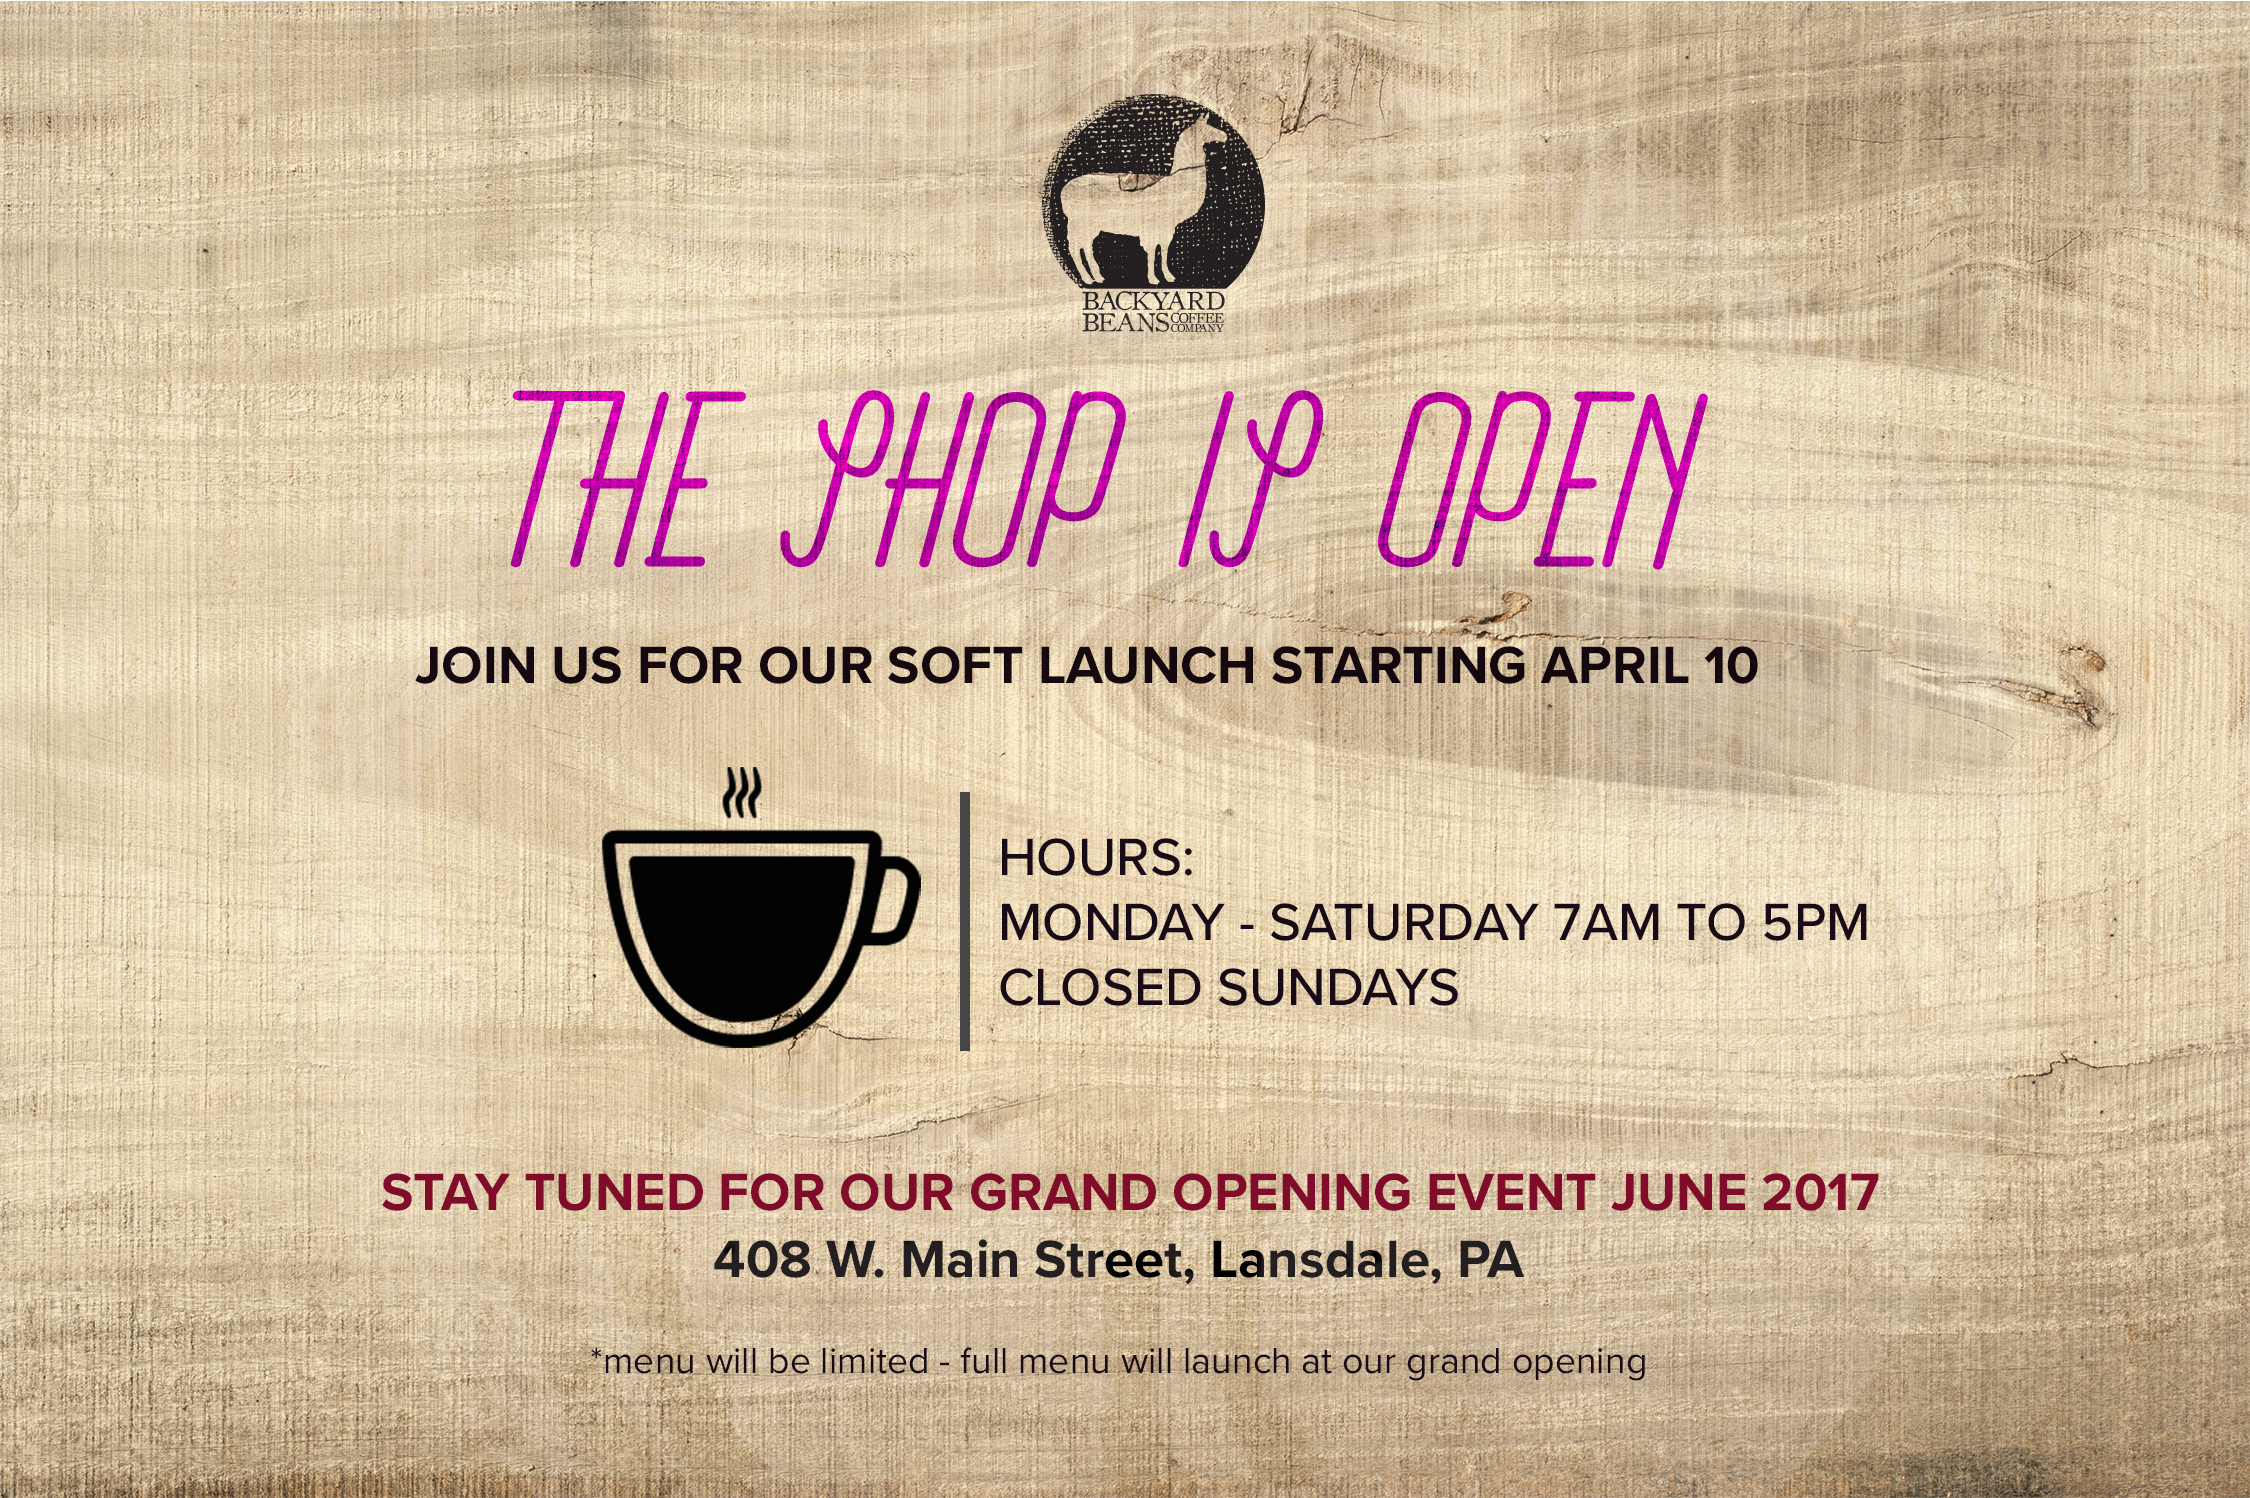 Click image for temporary store hours until we announce our Grand Opening!